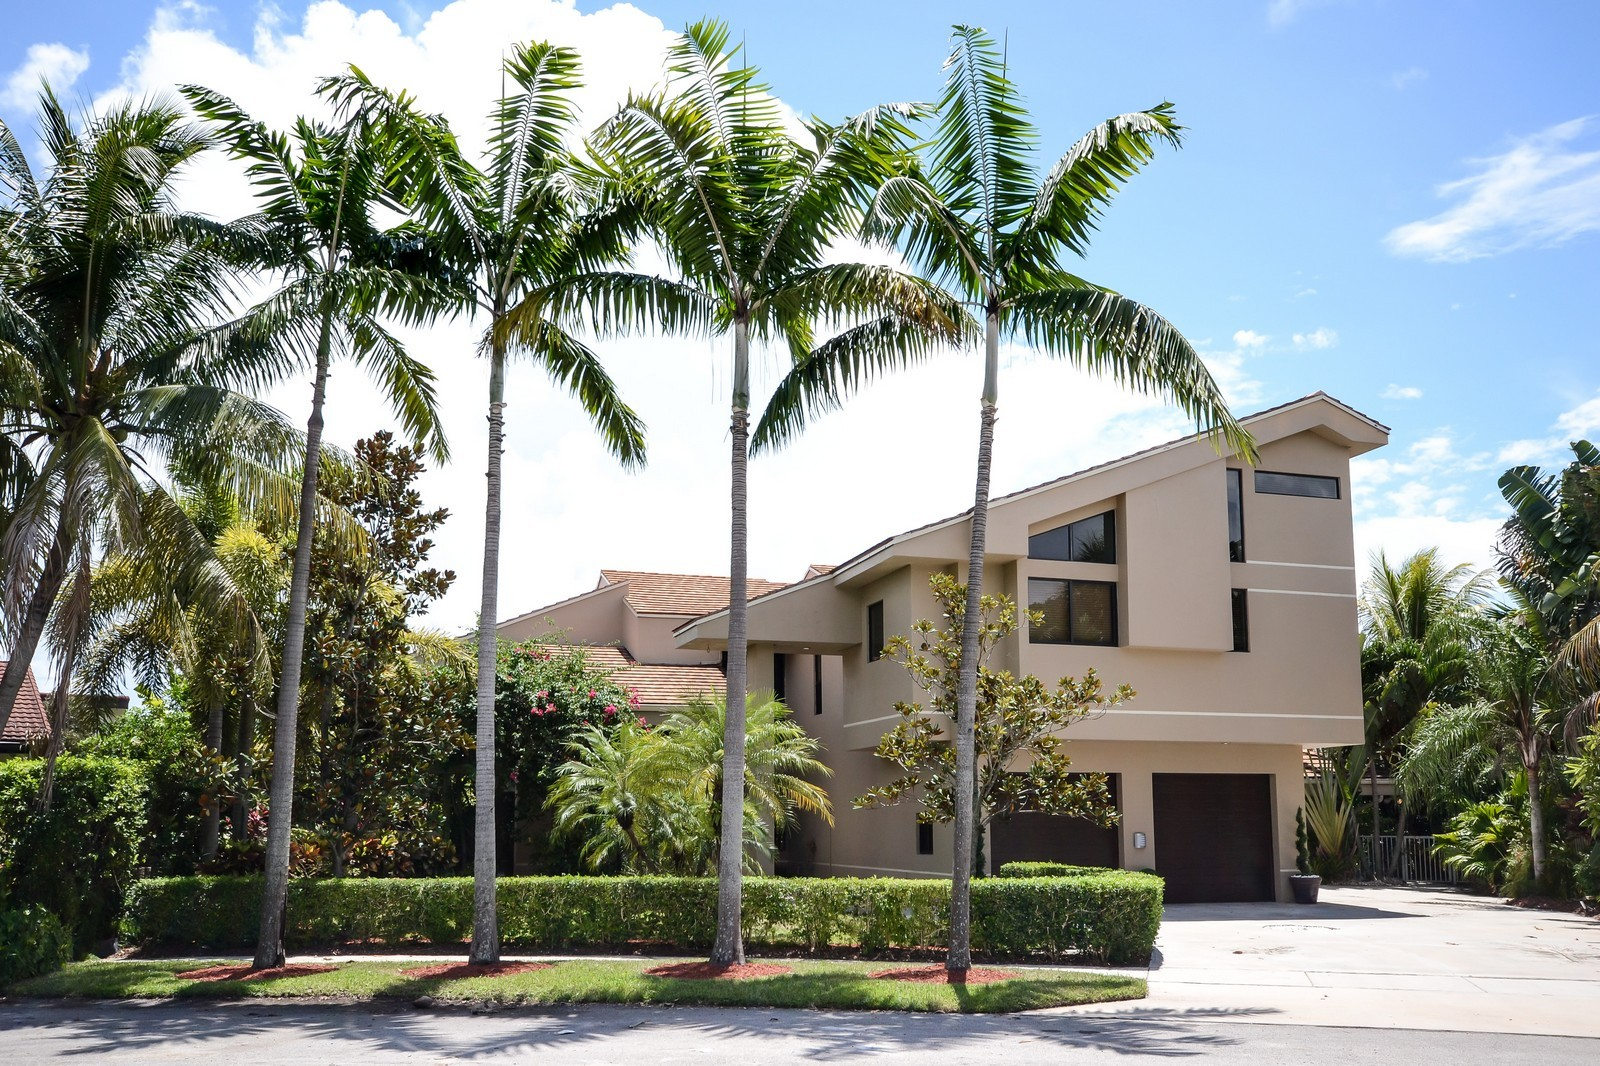 Real Estate Photography - 610 Carriage Hill Ln, Boca Raton, FL, 33486 - Front View